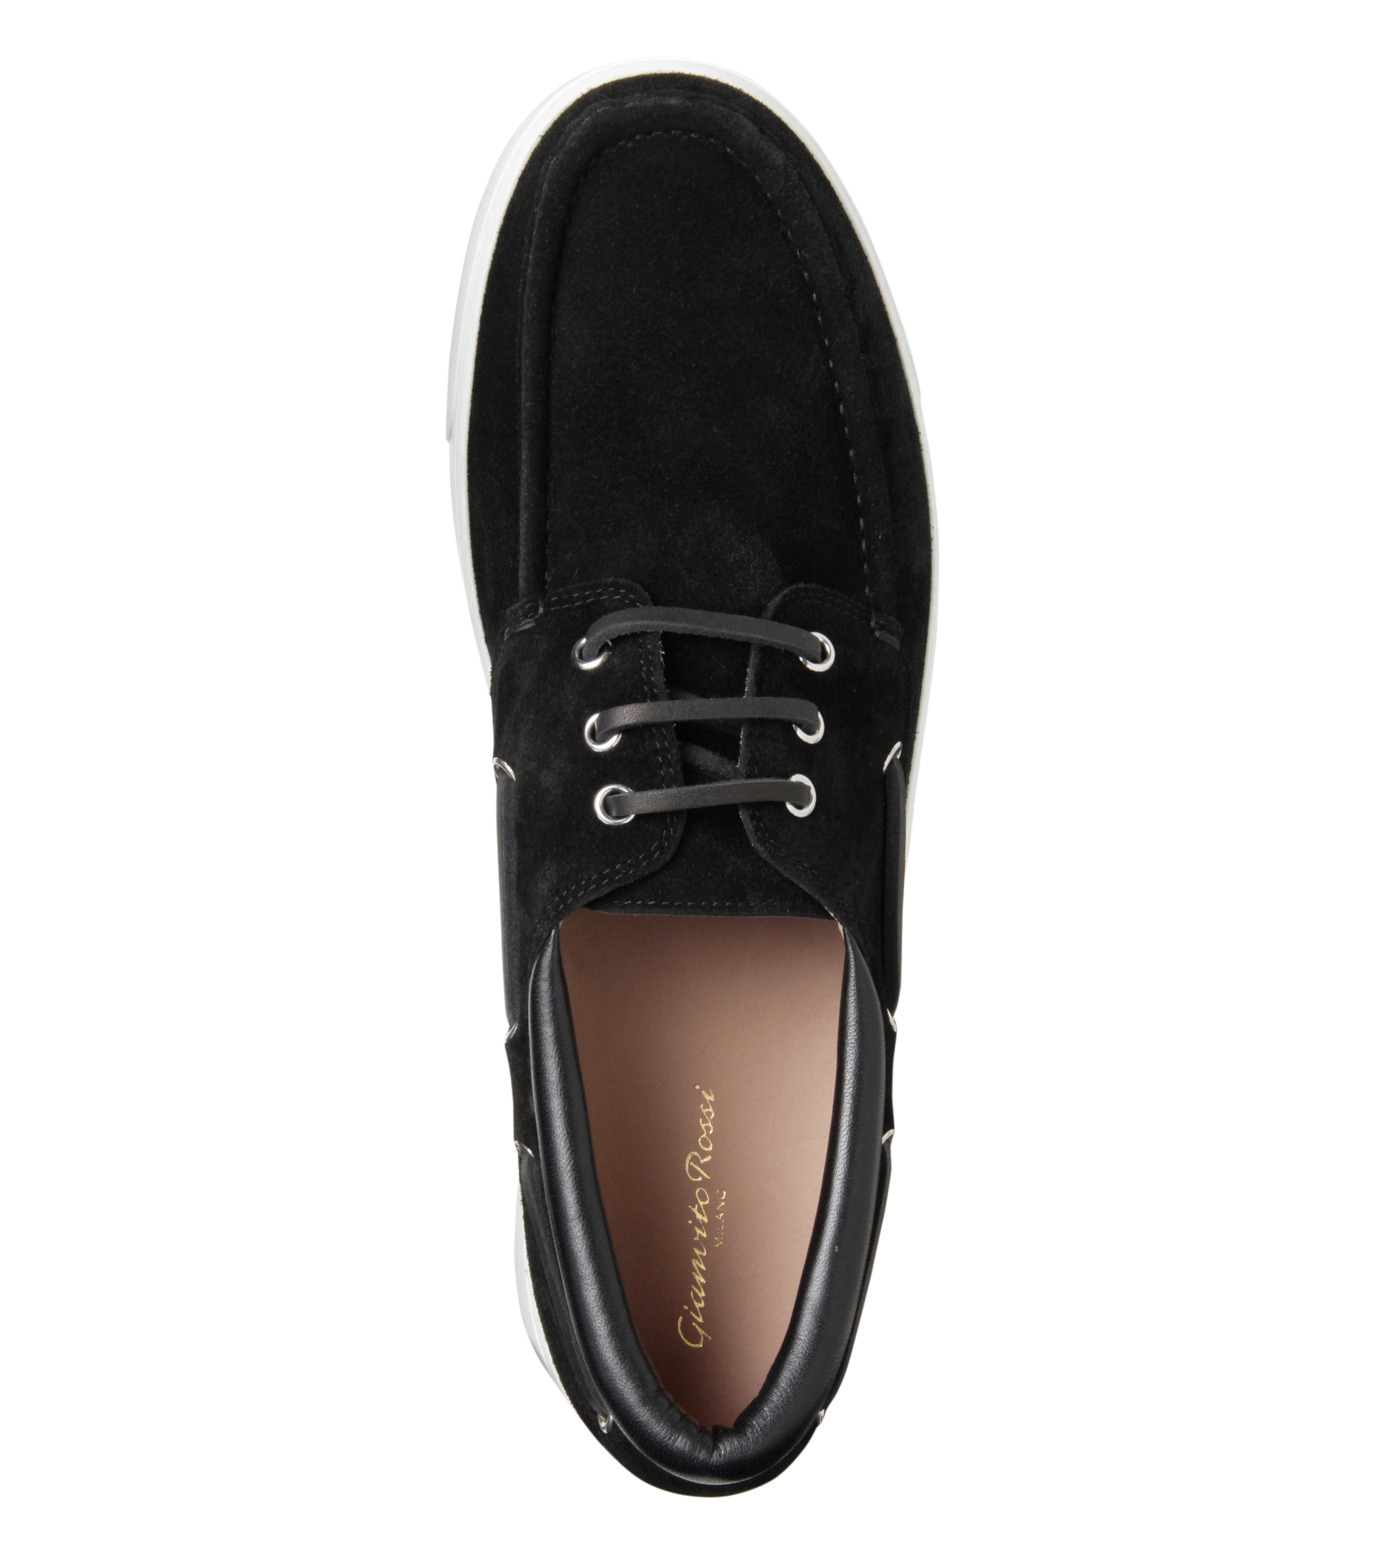 Gianvito Rossi(ジャンヴィト ロッシ)のMiddle Cut Deck Shoes-BLACK(シューズ/shoes)-S20966-13 拡大詳細画像5